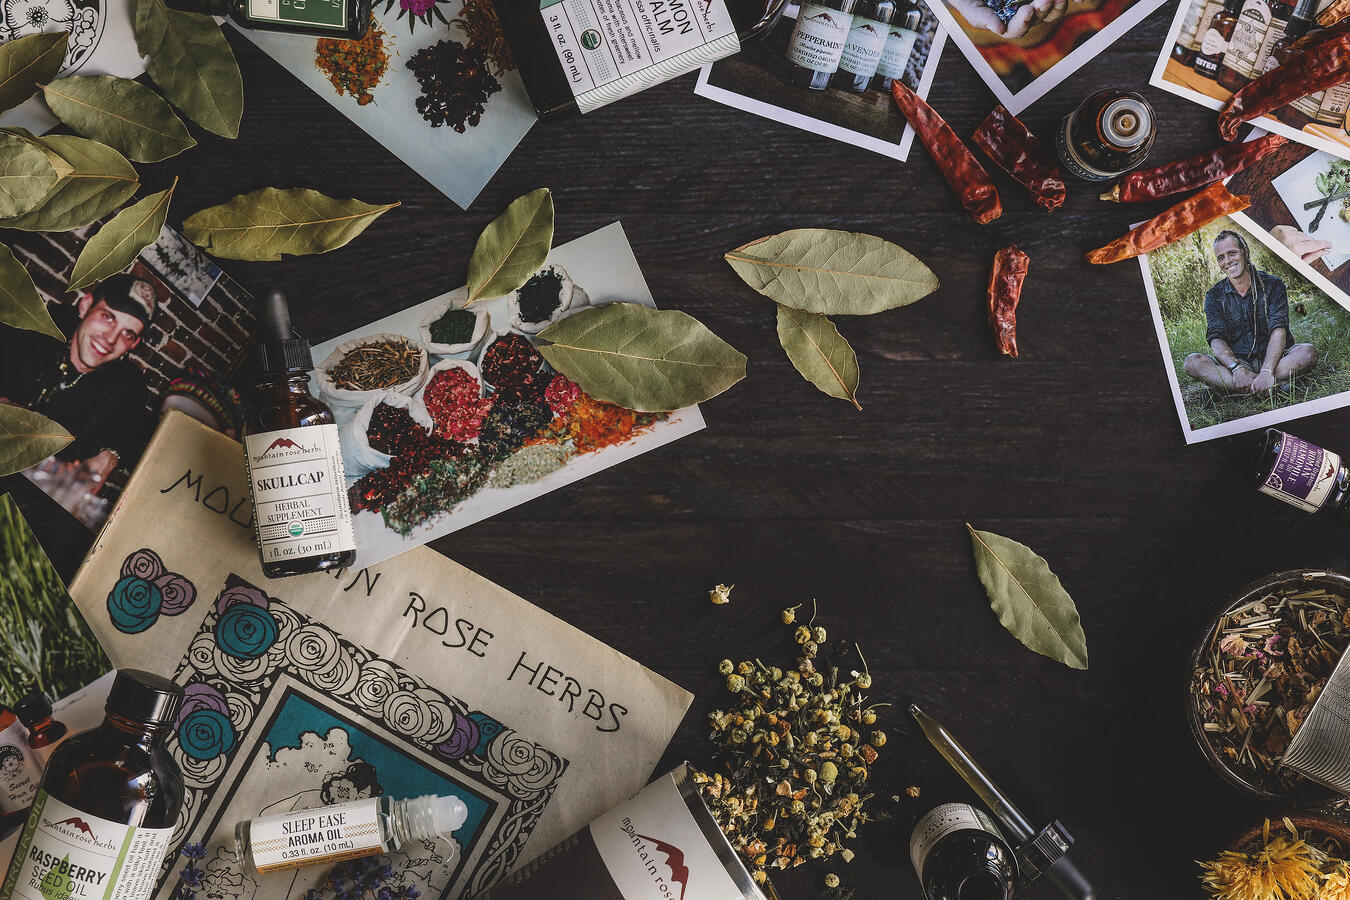 Old meets new Mountain Rose Herbs products